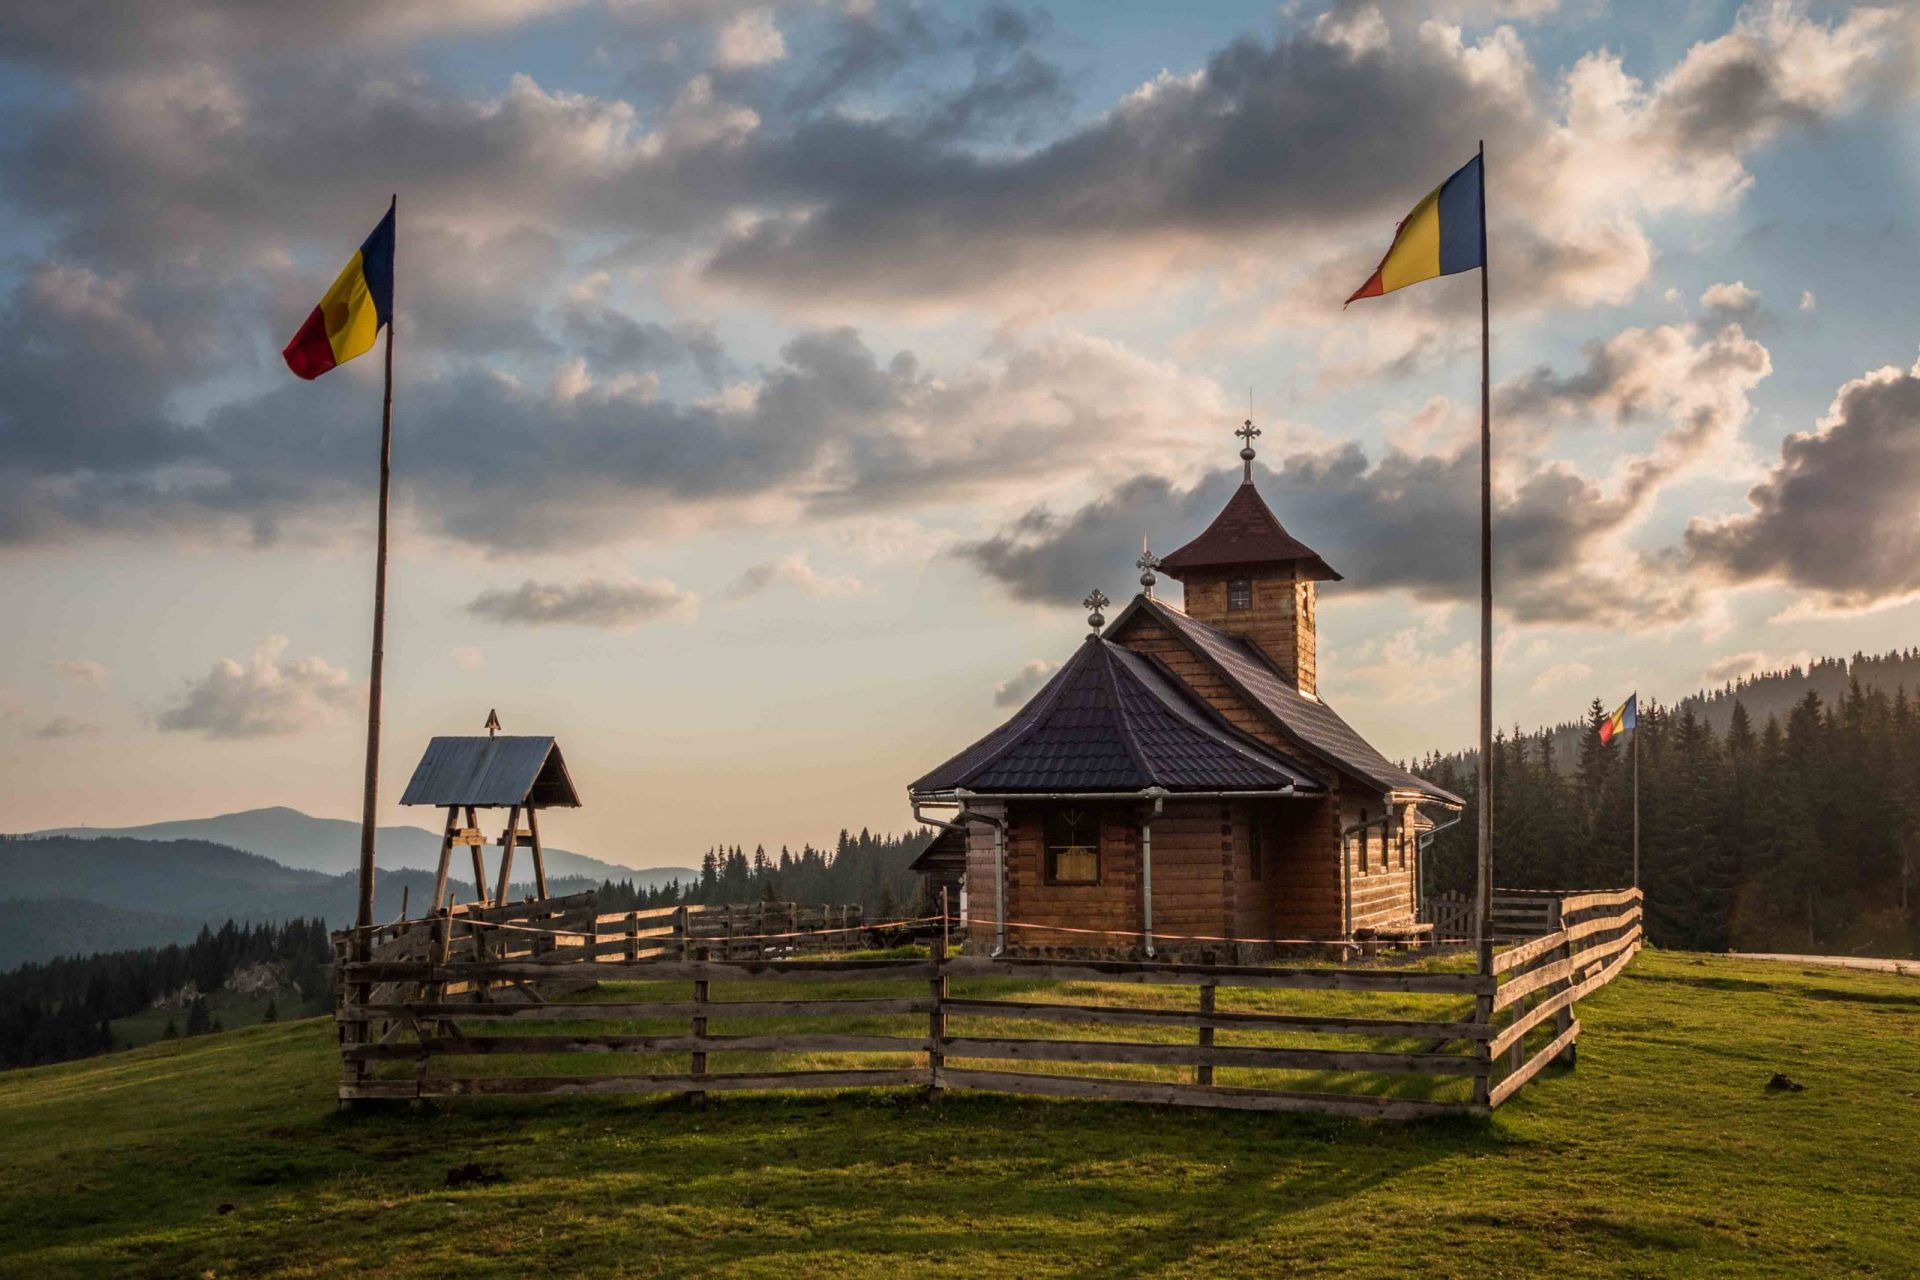 Wooden church and the Romanian flag